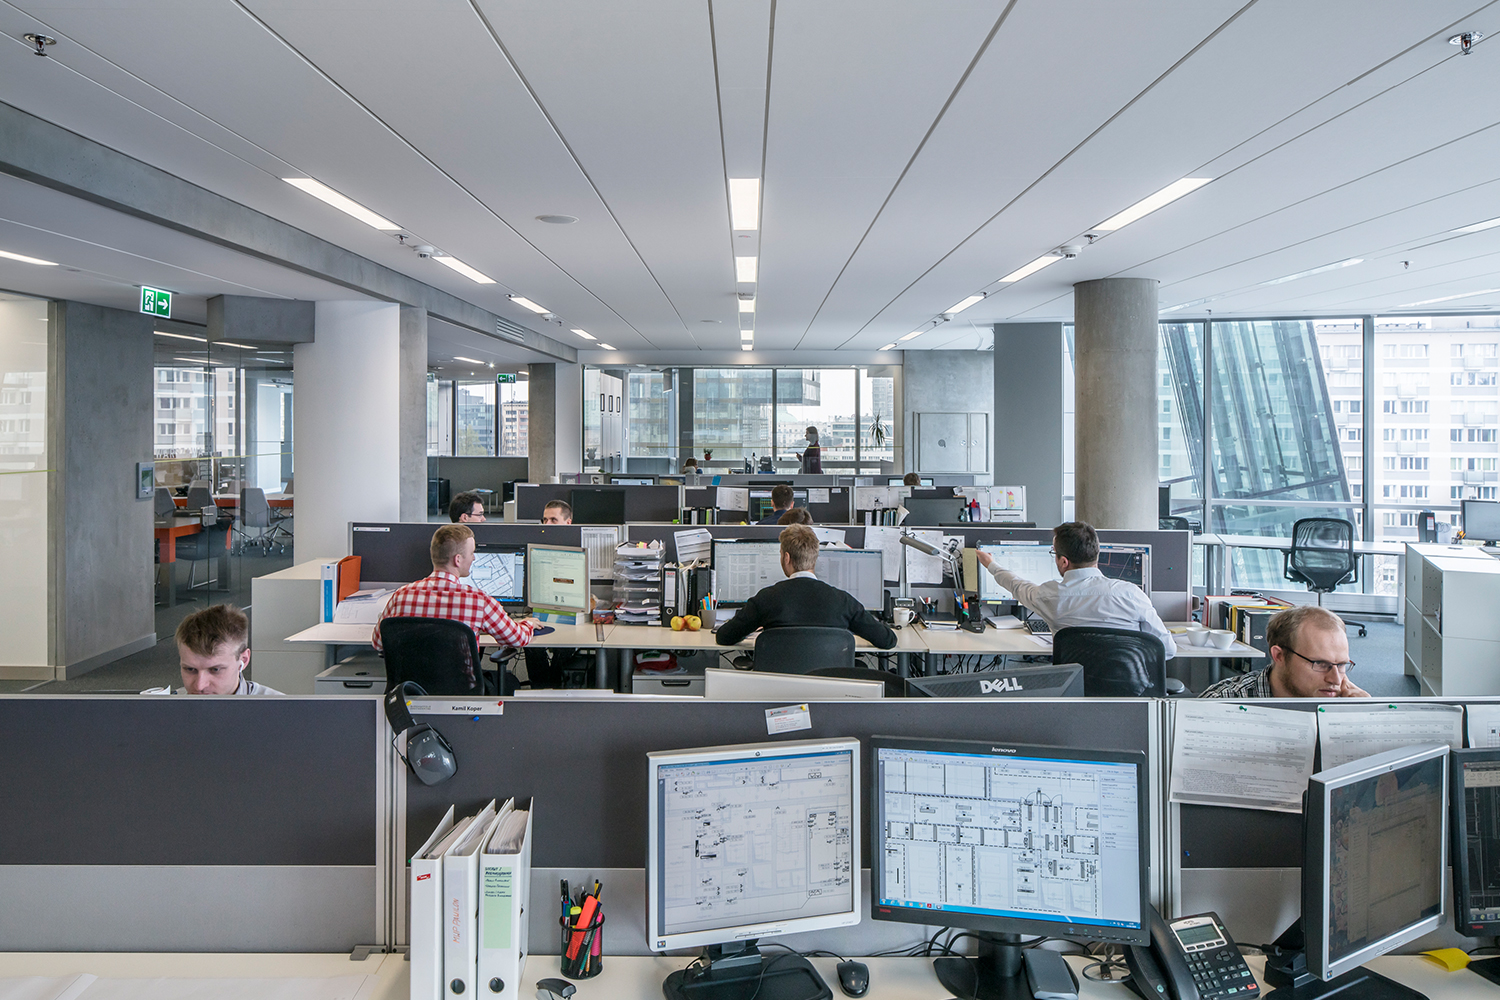 engineering office space design. on making their employees\u0027 health and well-being a top priority, with the space becoming \u0027living lab\u0027 test environment for cutting-edge office design. engineering design